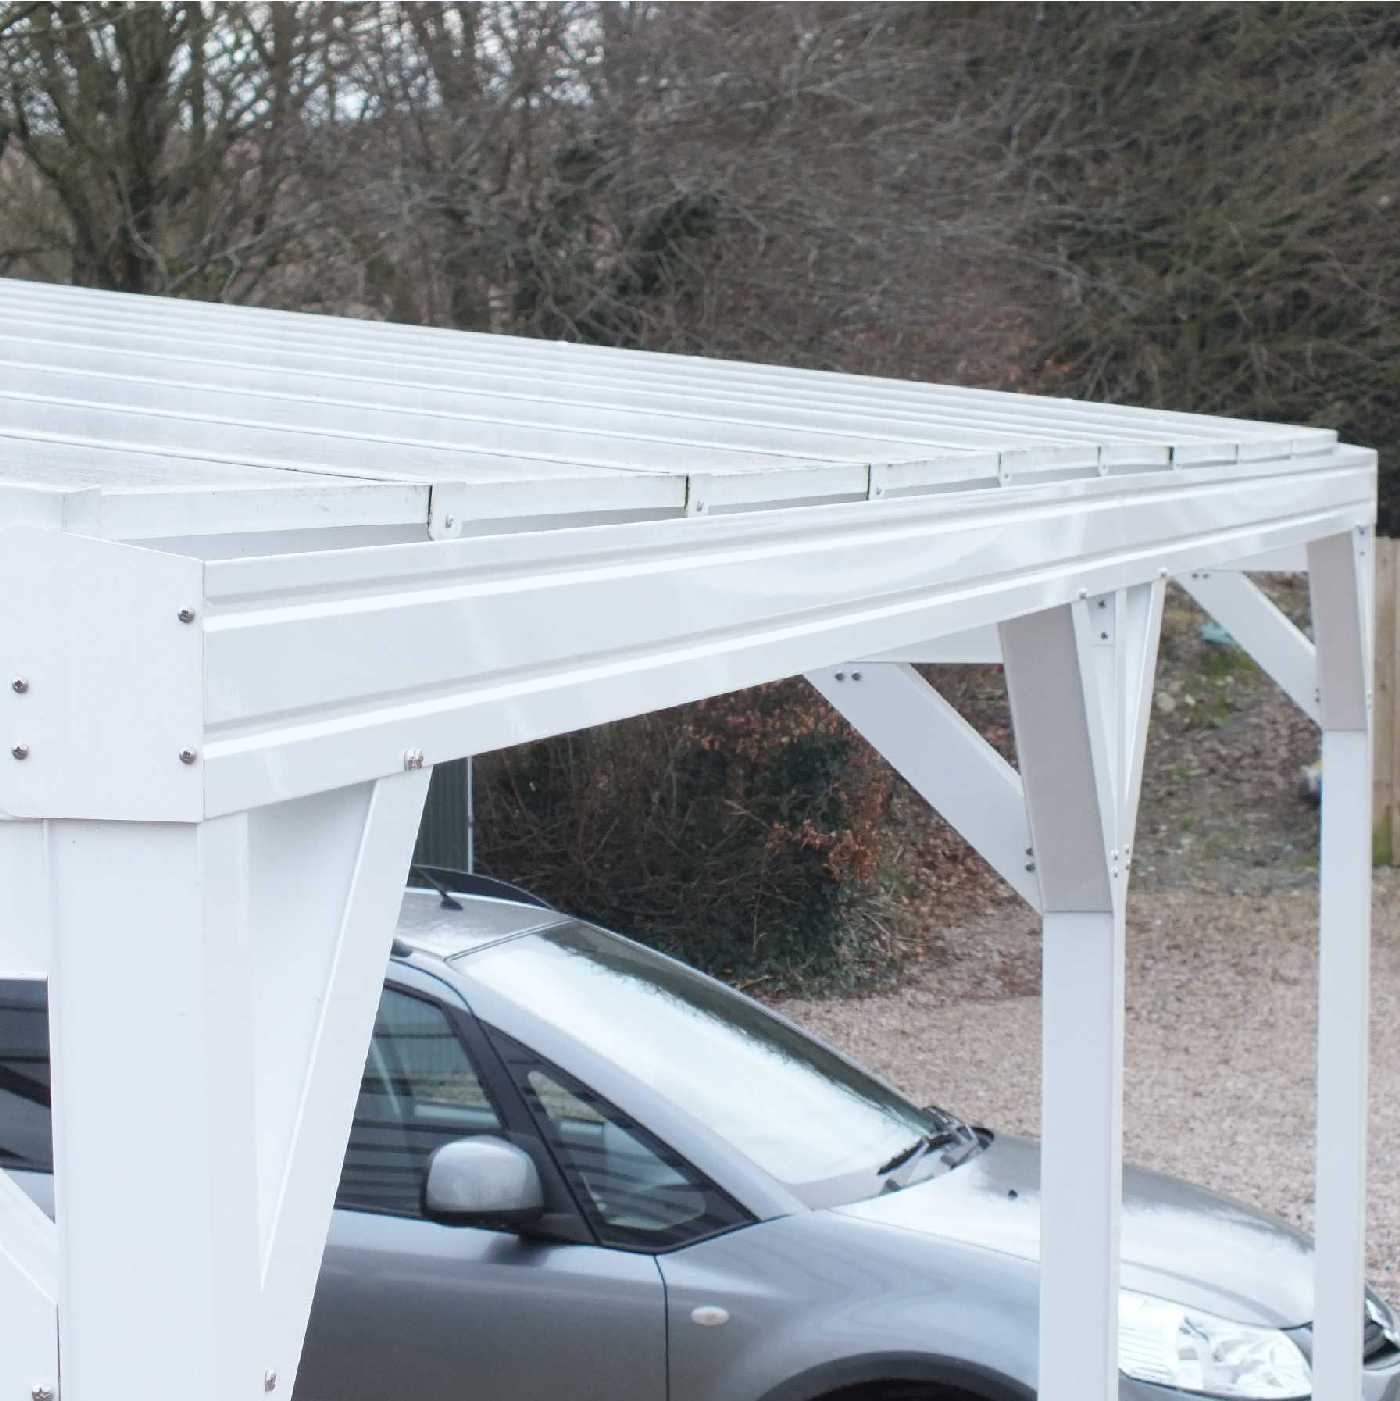 Omega Smart Free-Standing, MonoPitch Roof Canopy with 16mm Polycarbonate Glazing - 6.3m (W) x 2.5m (P), (8) Supporting Posts from Omega Build